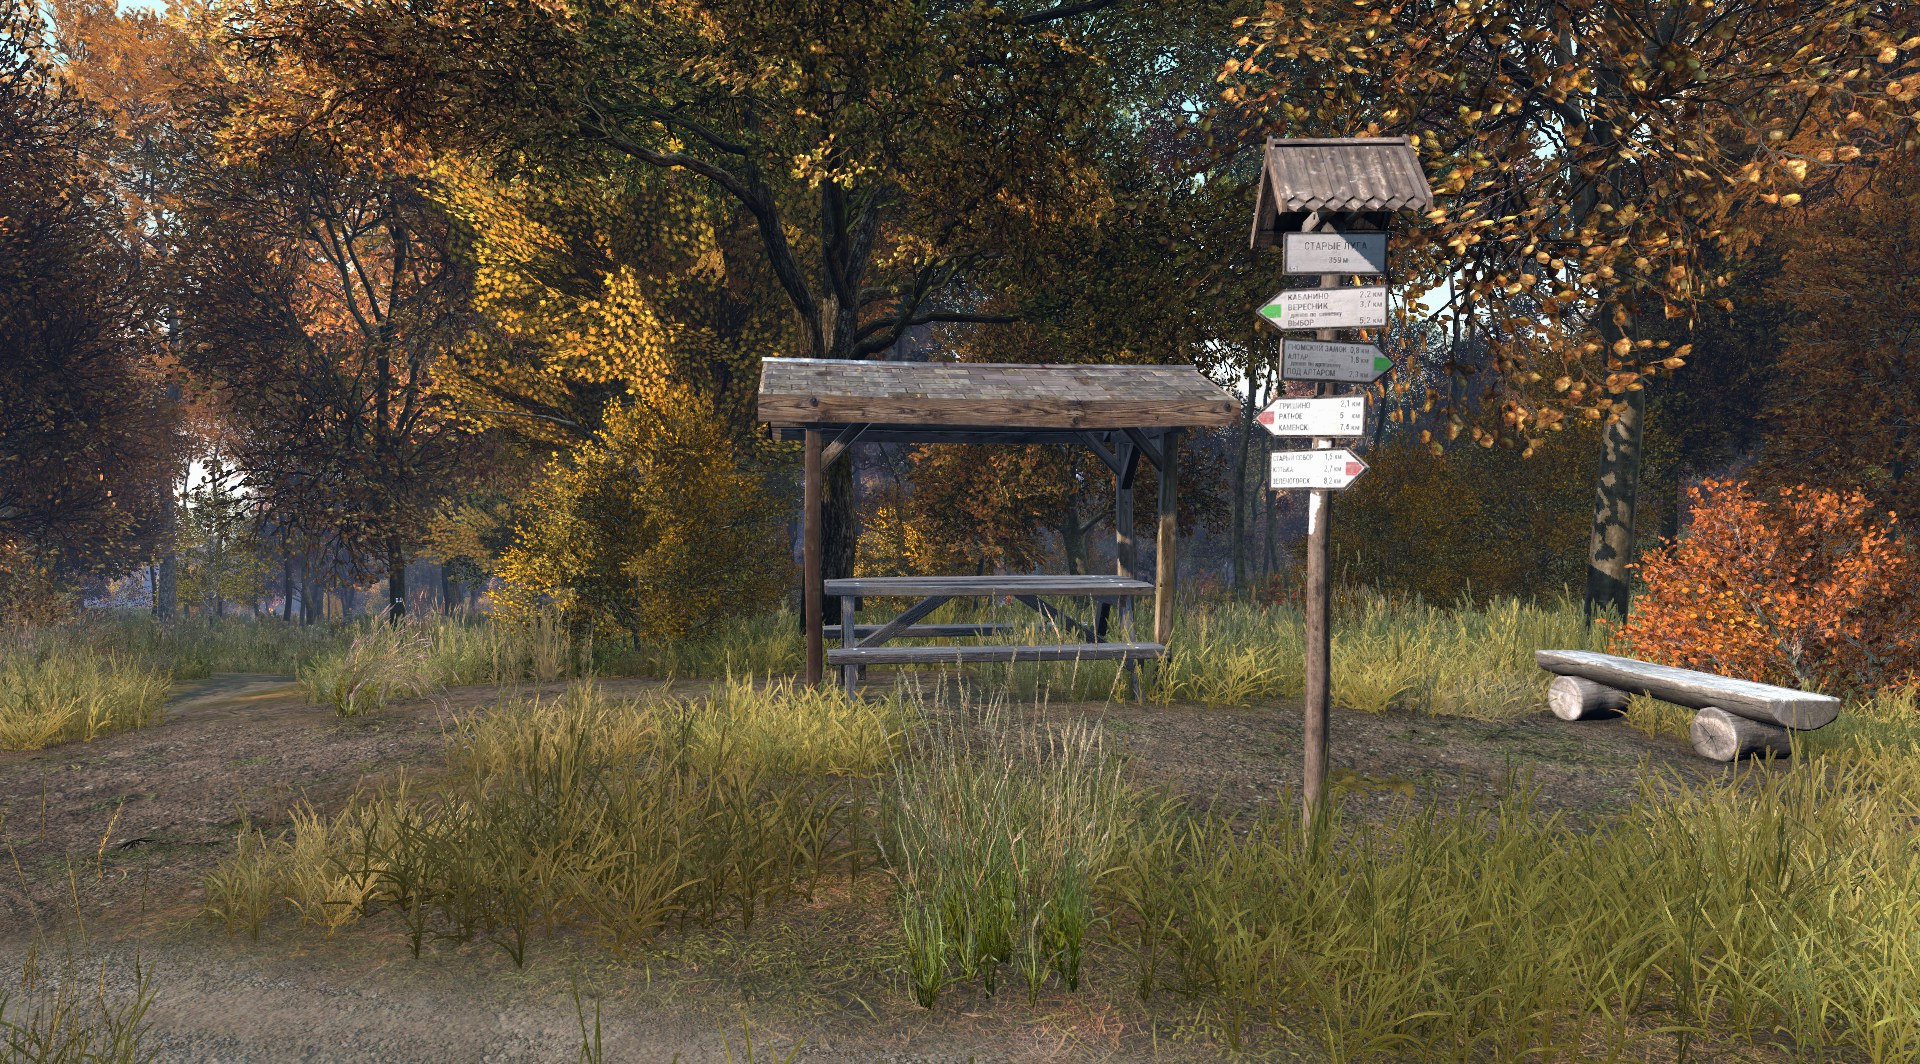 New DayZ engine coming to PC